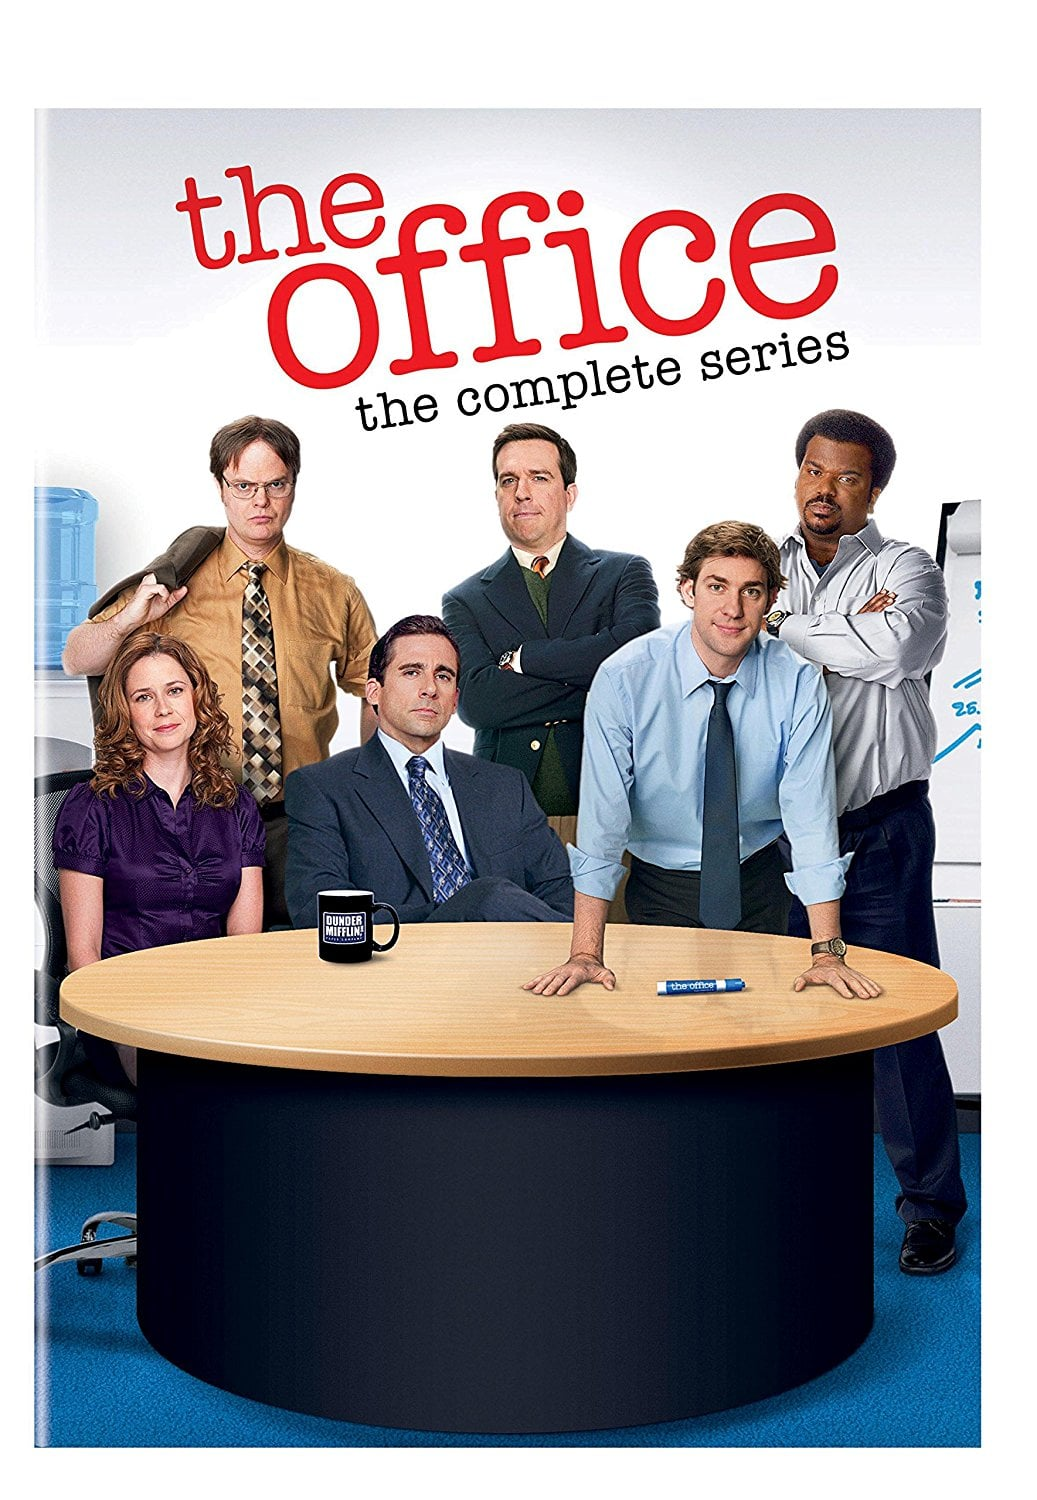 the office the complete series 99 the ultimate 2016. Black Bedroom Furniture Sets. Home Design Ideas